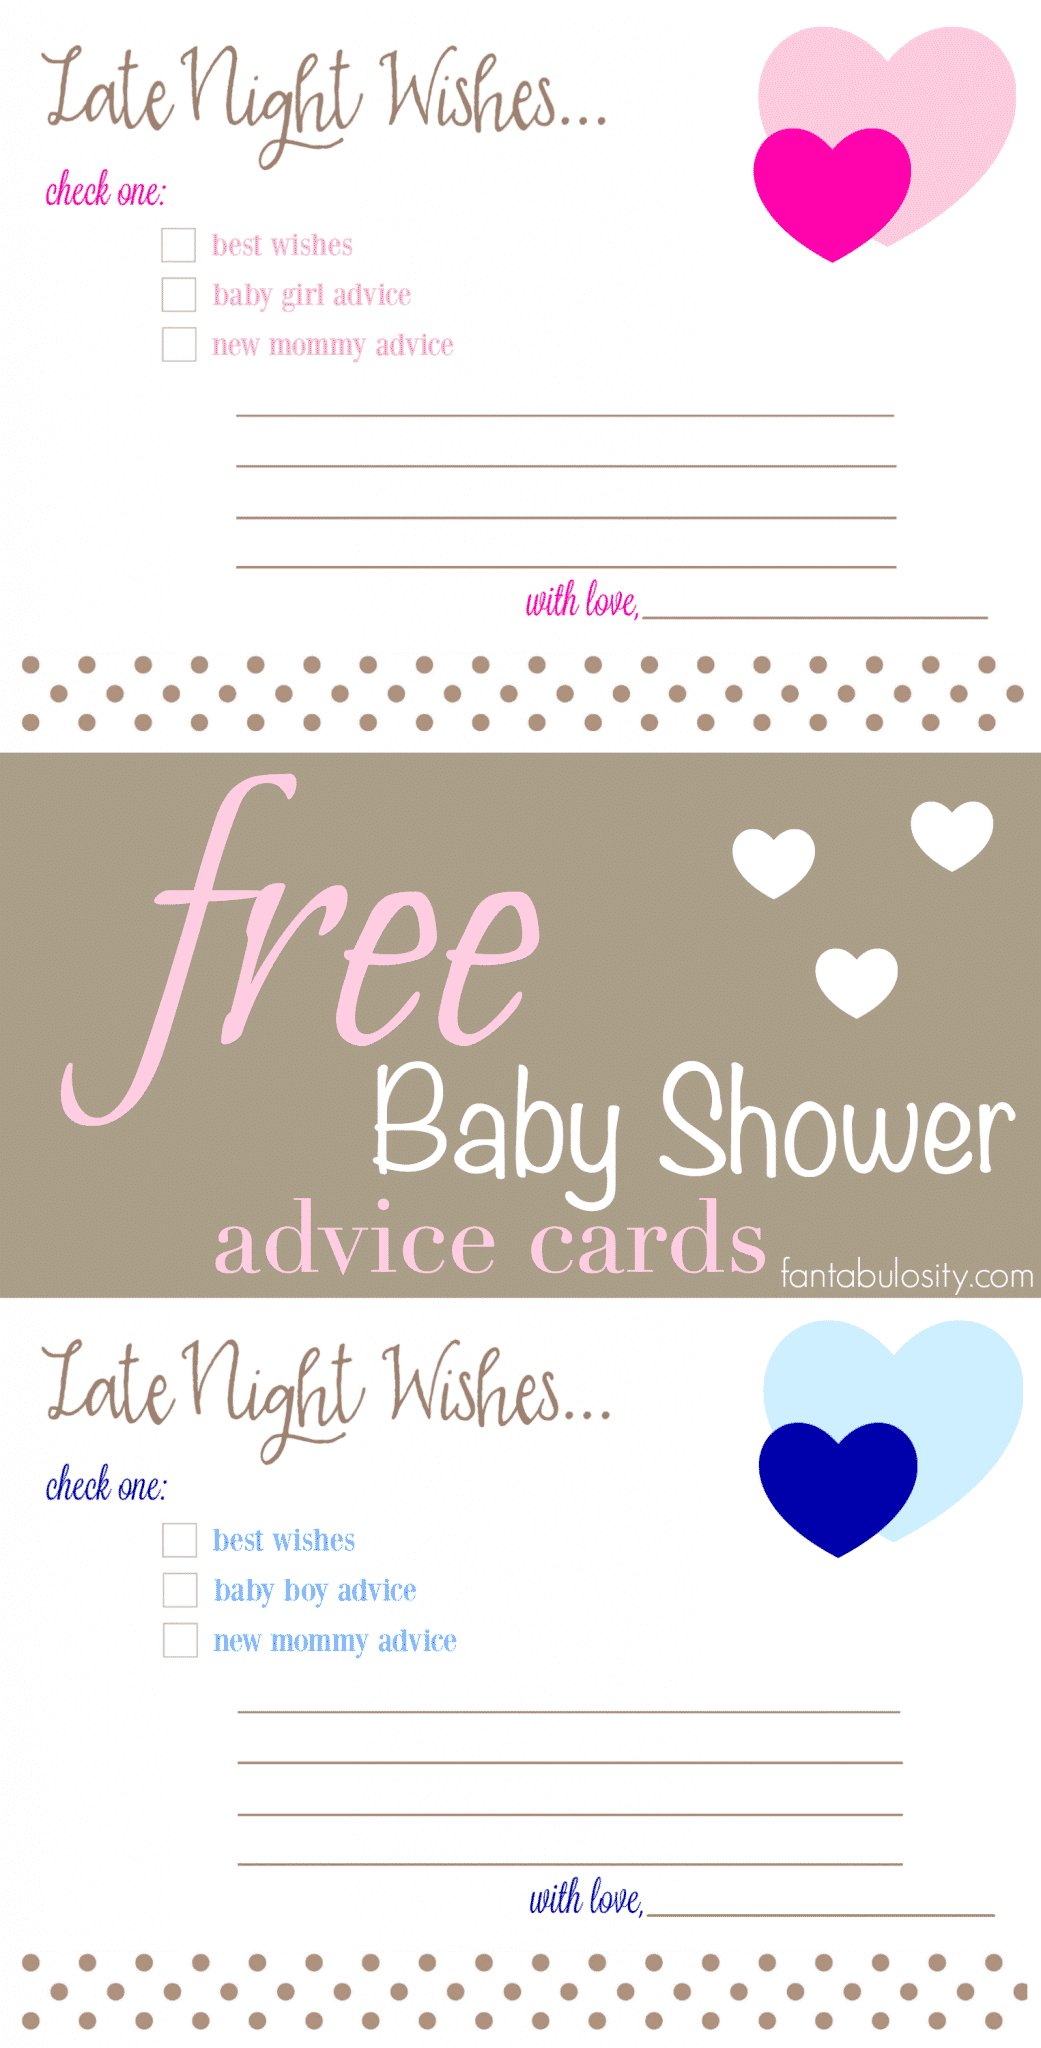 Free Printable Baby Shower Advice & Best Wishes Cards - Fantabulosity - Free Printable Advice Cards For Baby Shower Template